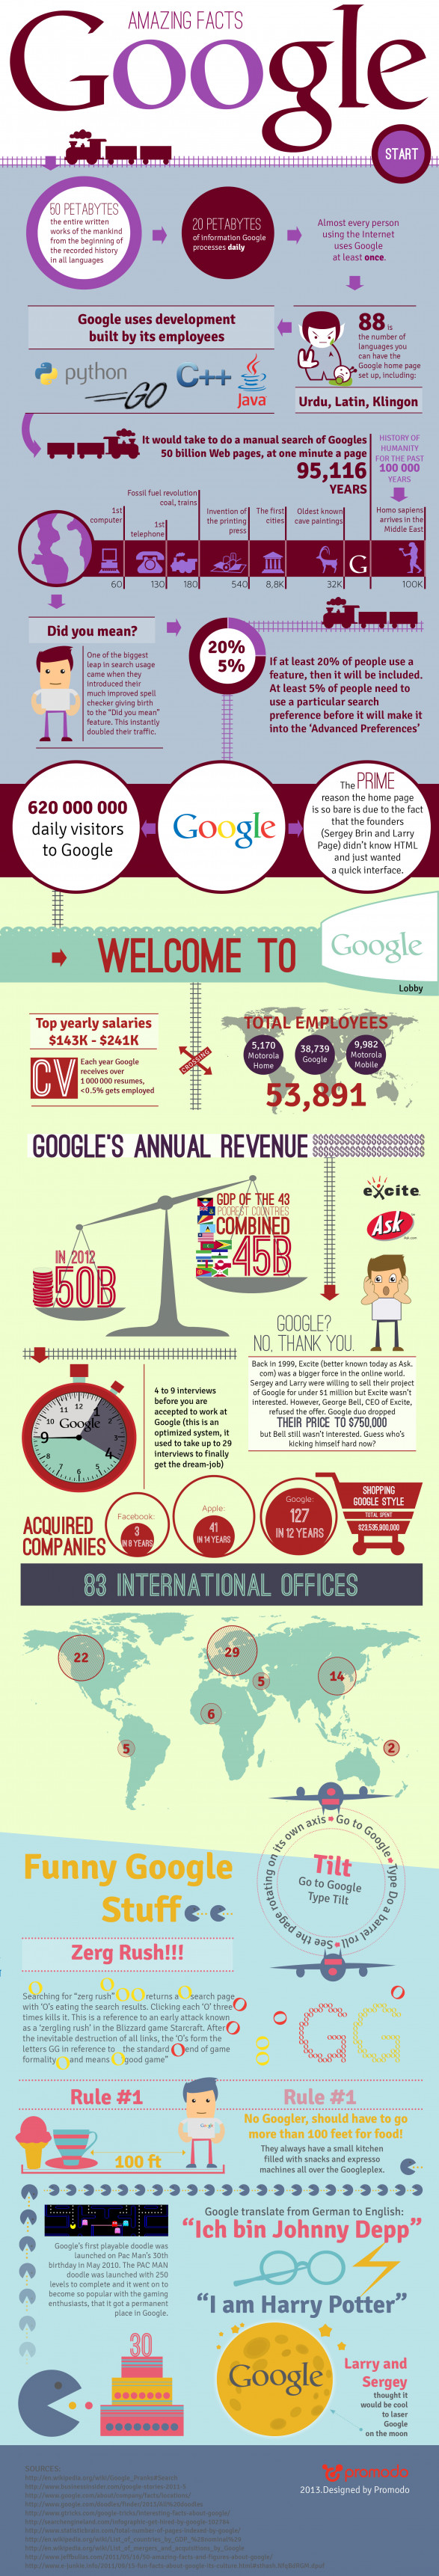 Amazing Google Facts You Most Probably Didn�t Know